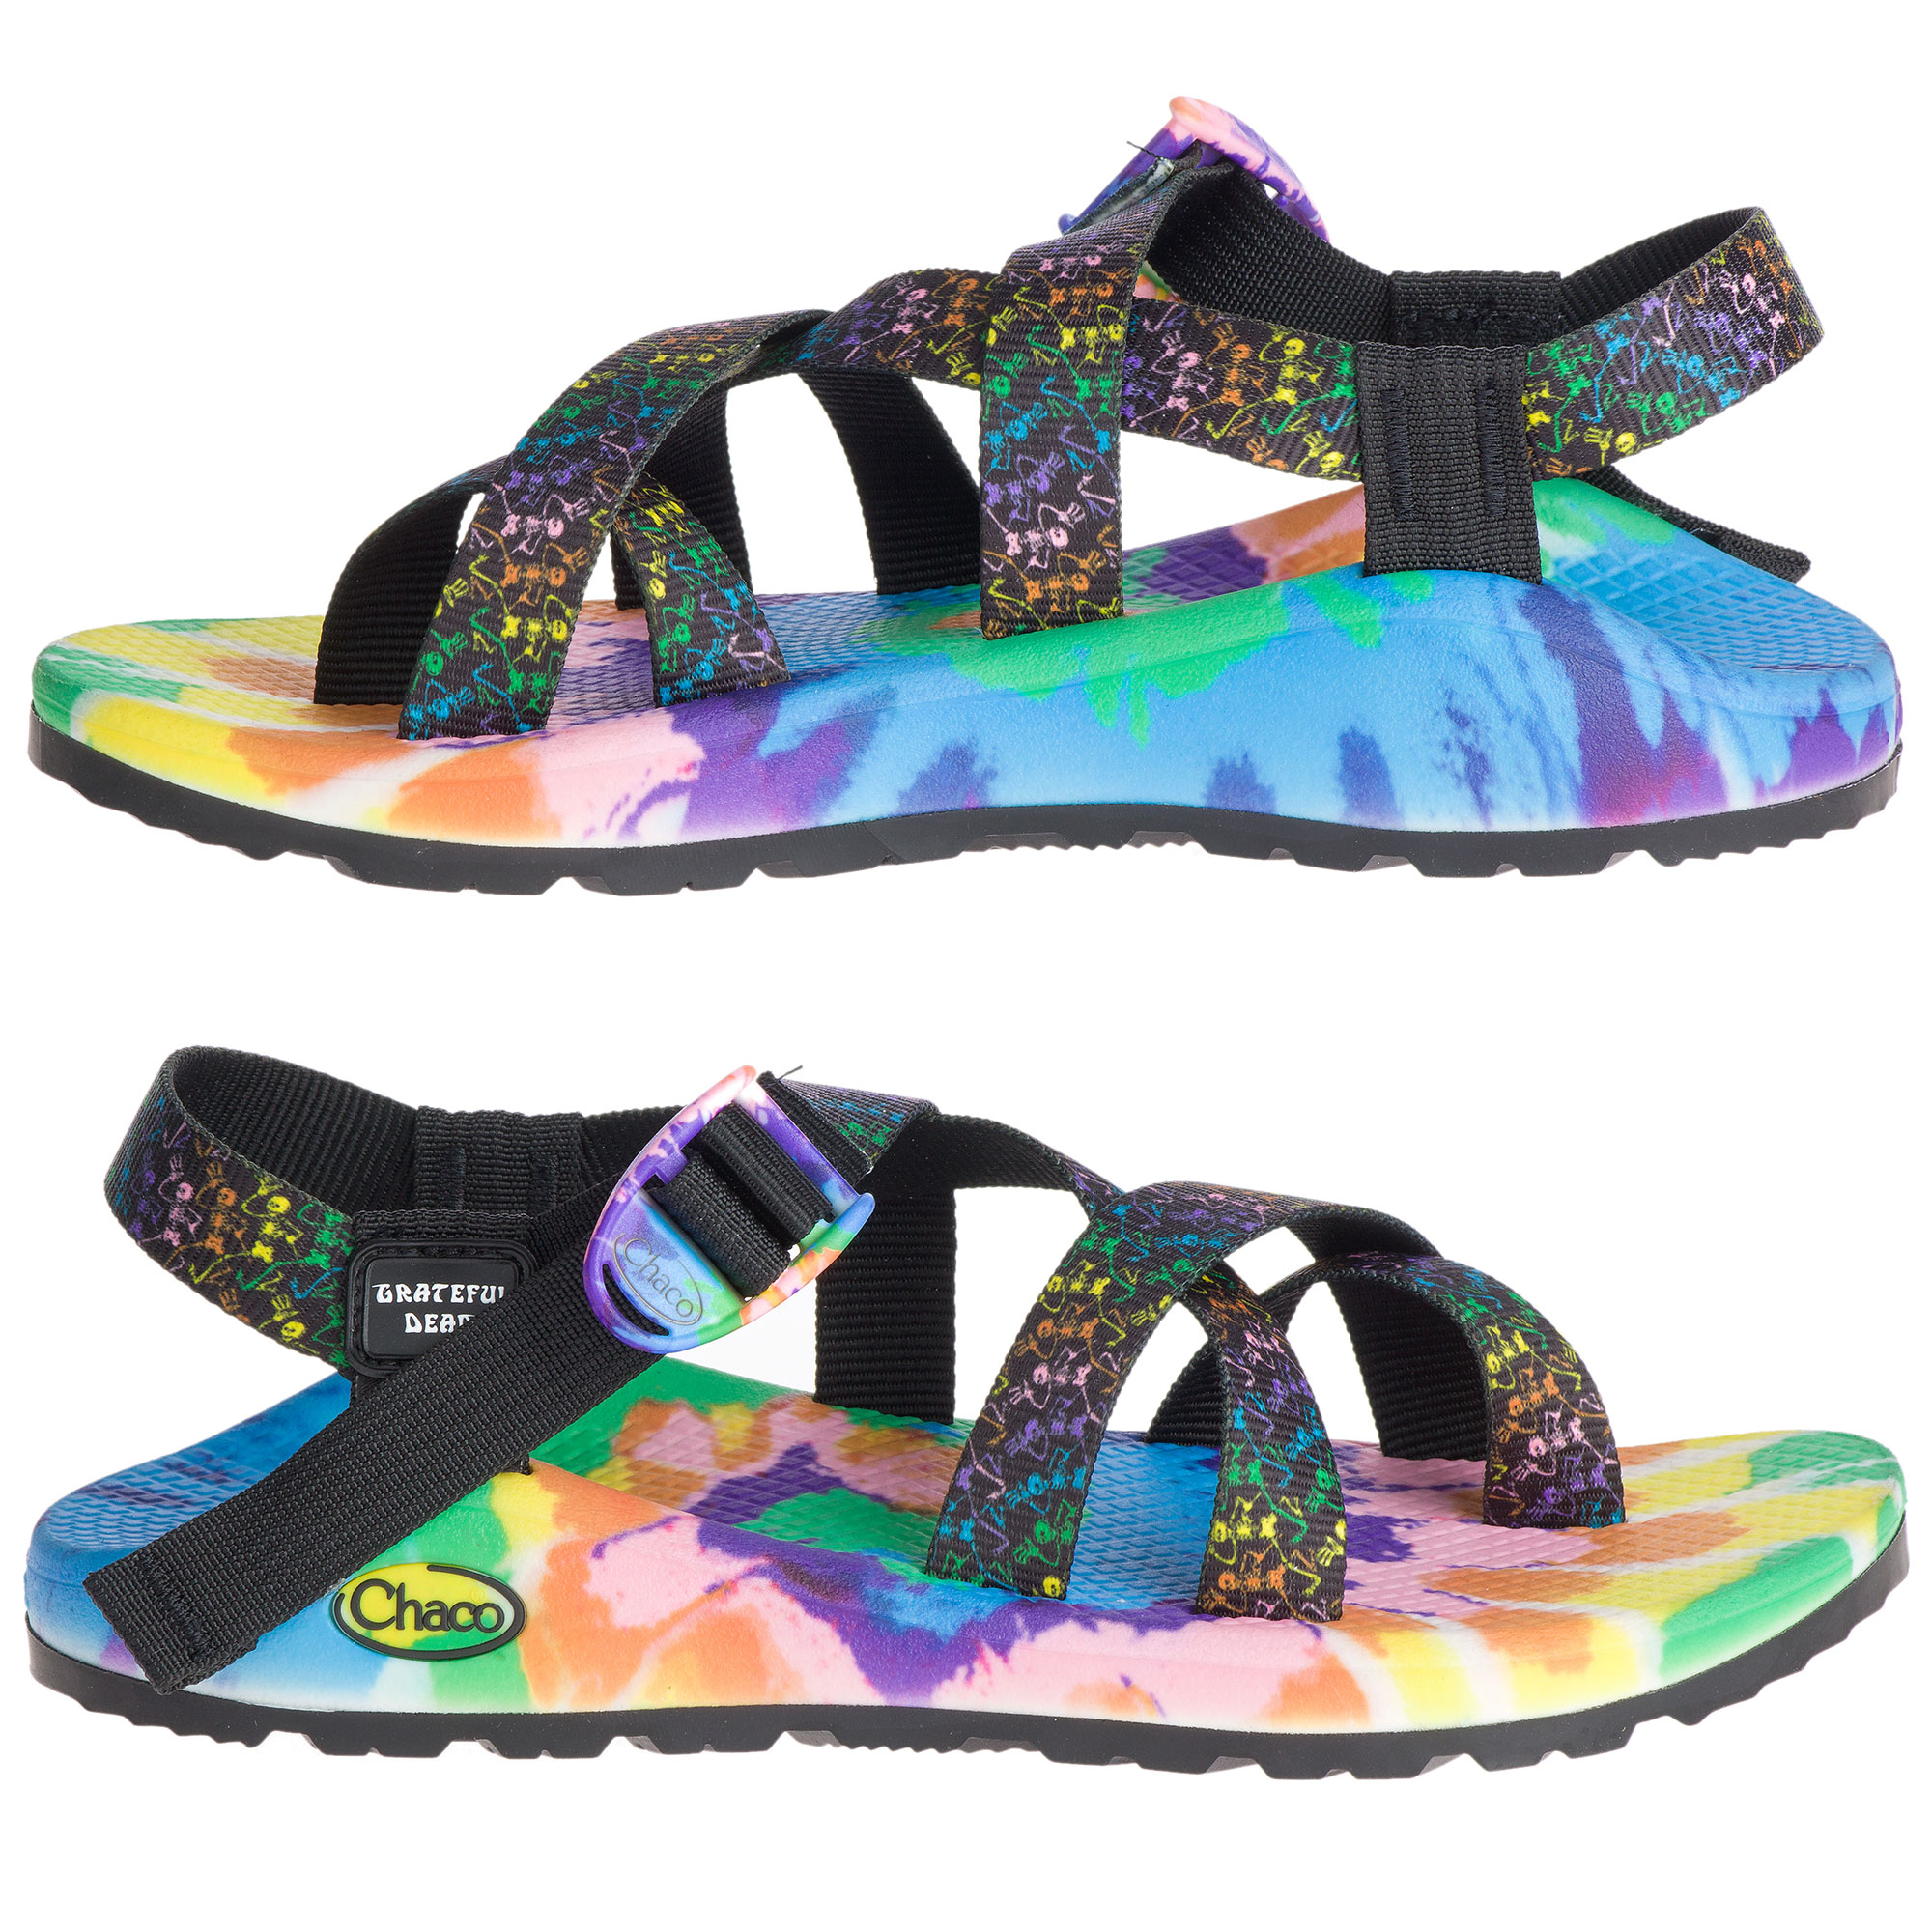 3def18c94820 Chaco Women s Z Cloud 2 Grateful Dead Sandals - Sun   Ski Sports